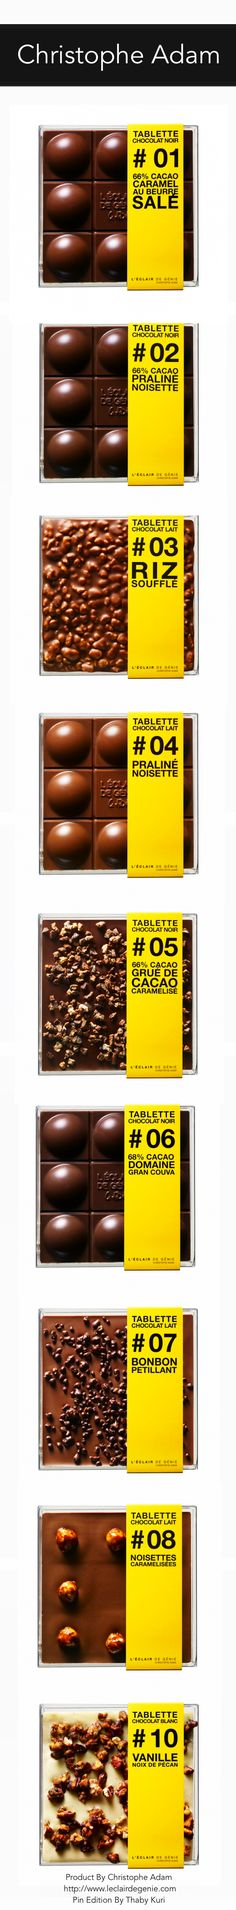 AMAZING CHOCOLATE TABLETTE  By Christophe Adam. #numbers #chocolate #packaging PD